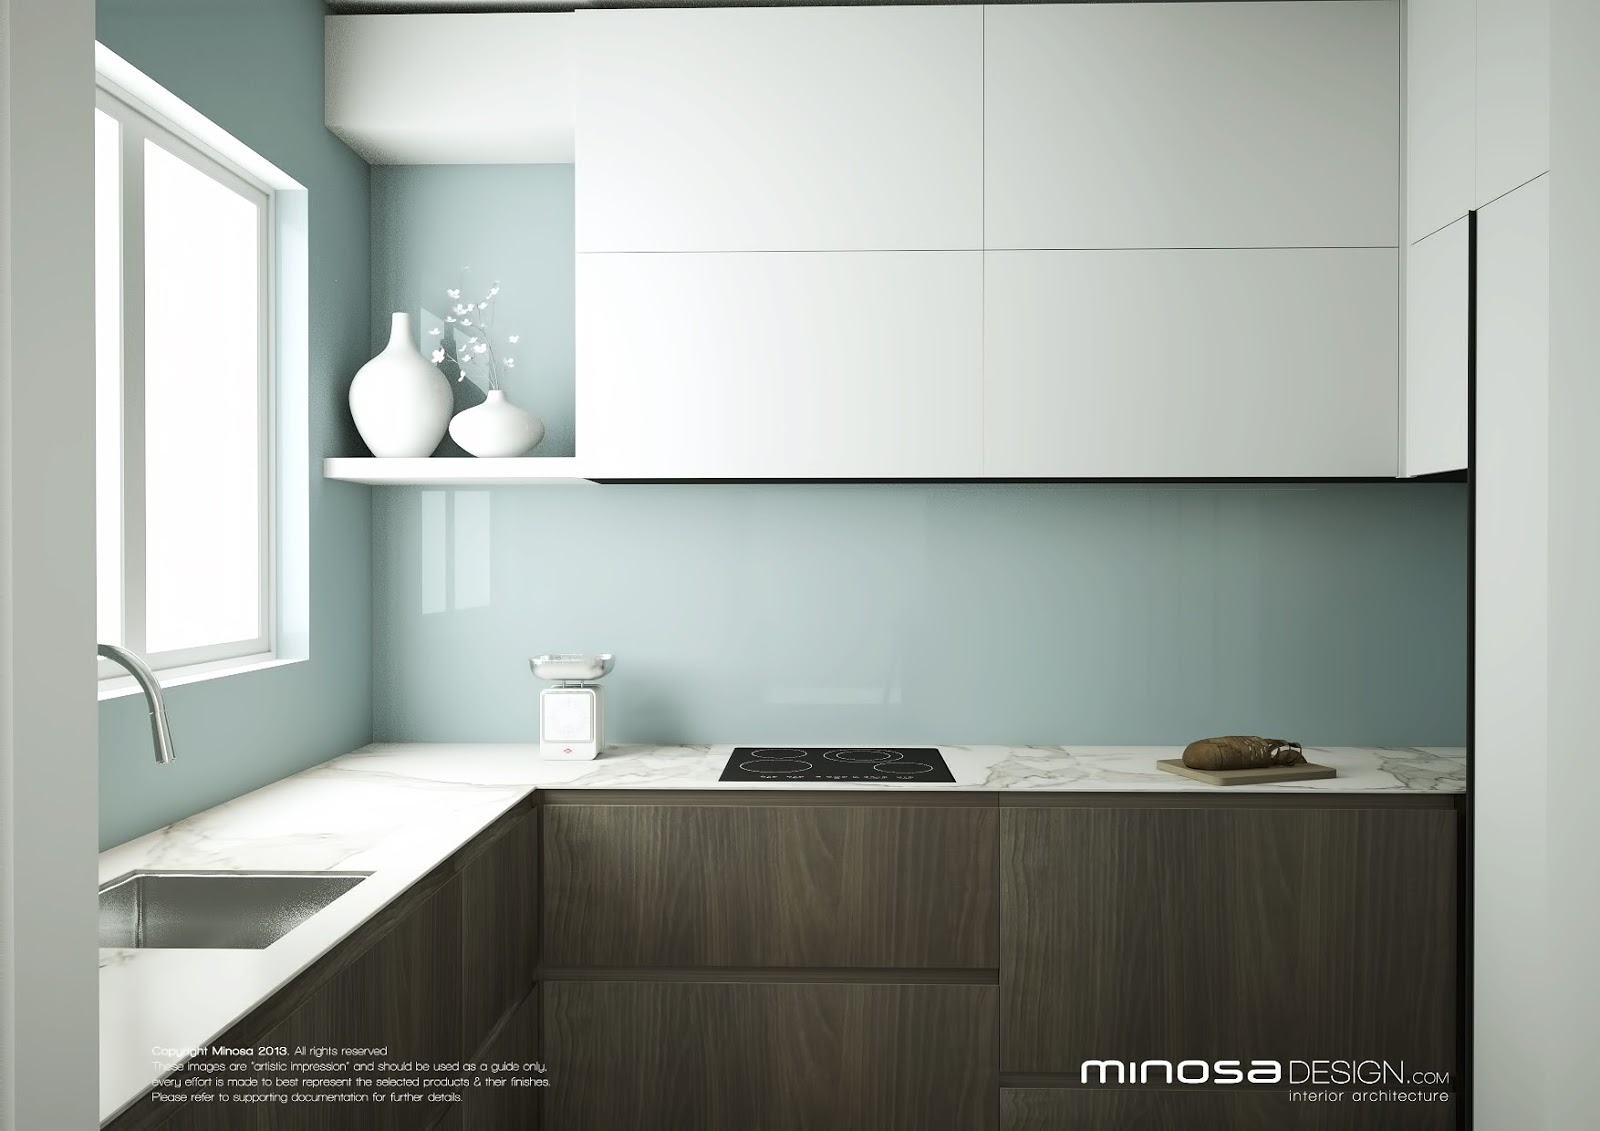 Minosa: Kitchen Design - Connecting Family